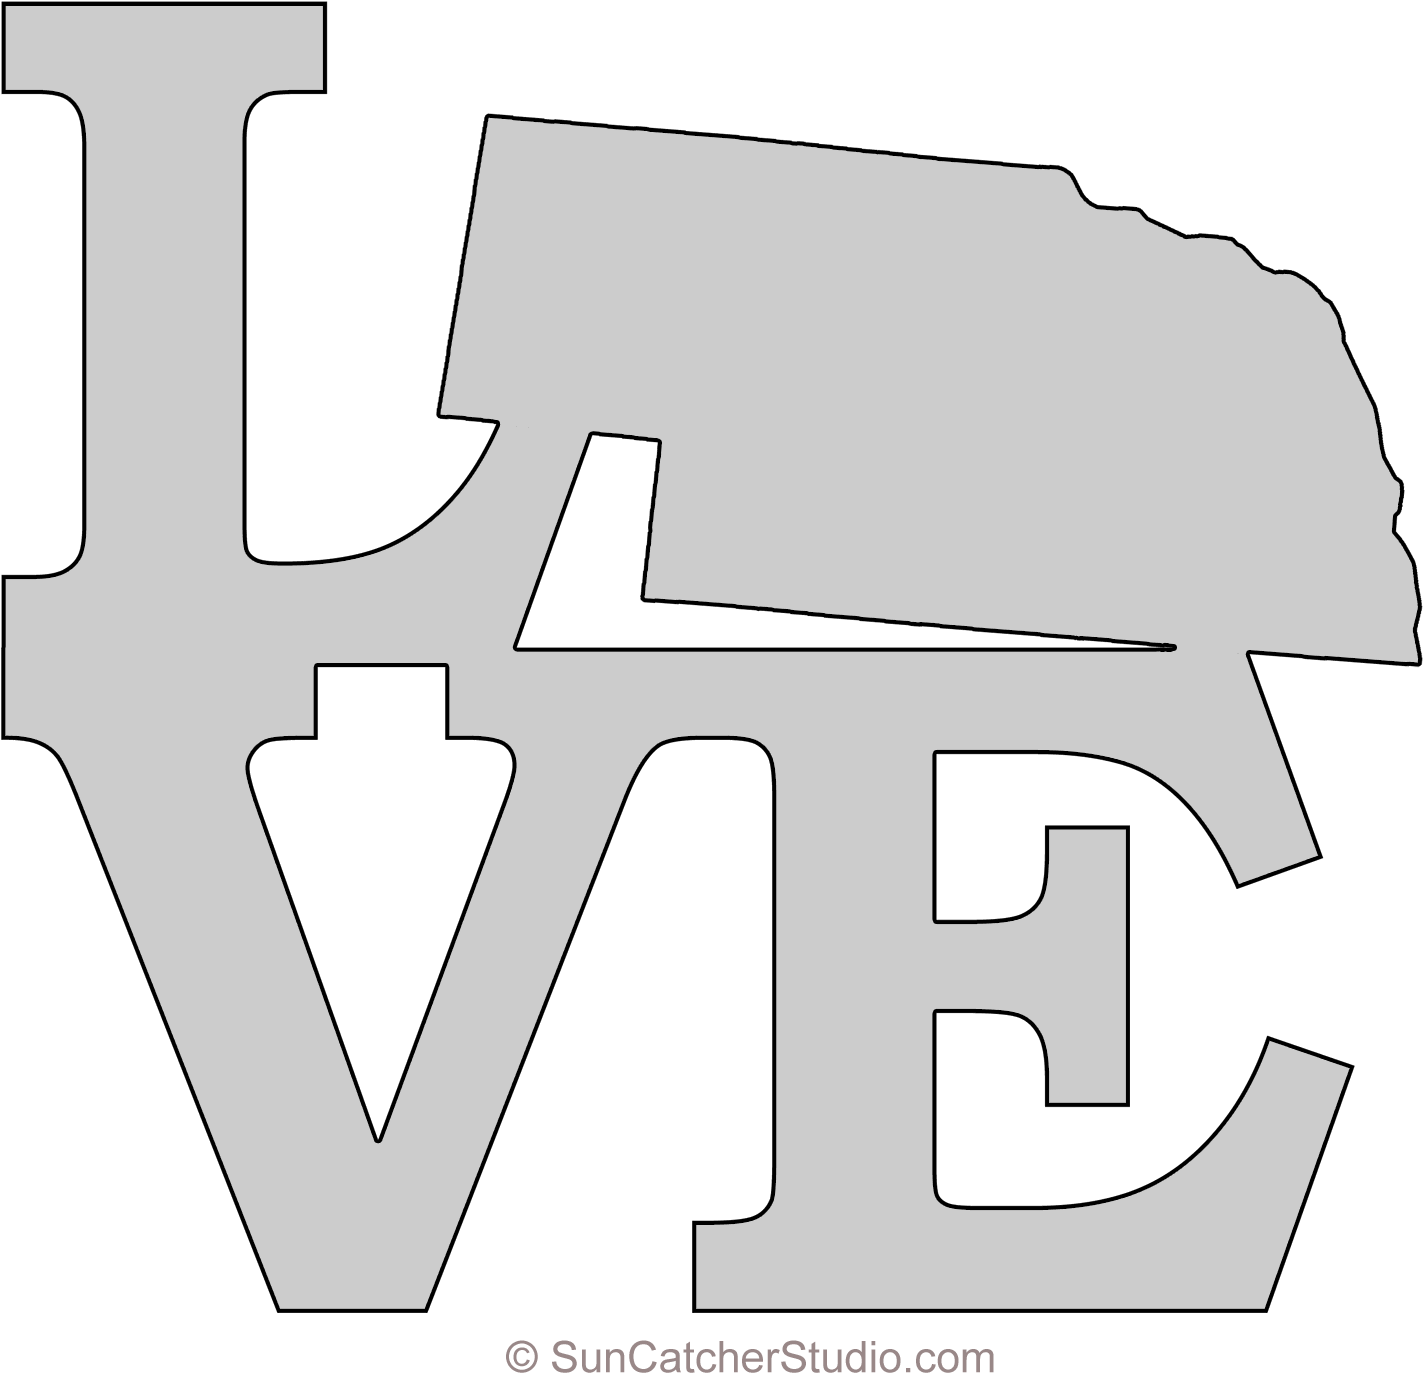 Saw img background png pattern. Download nebraska love map